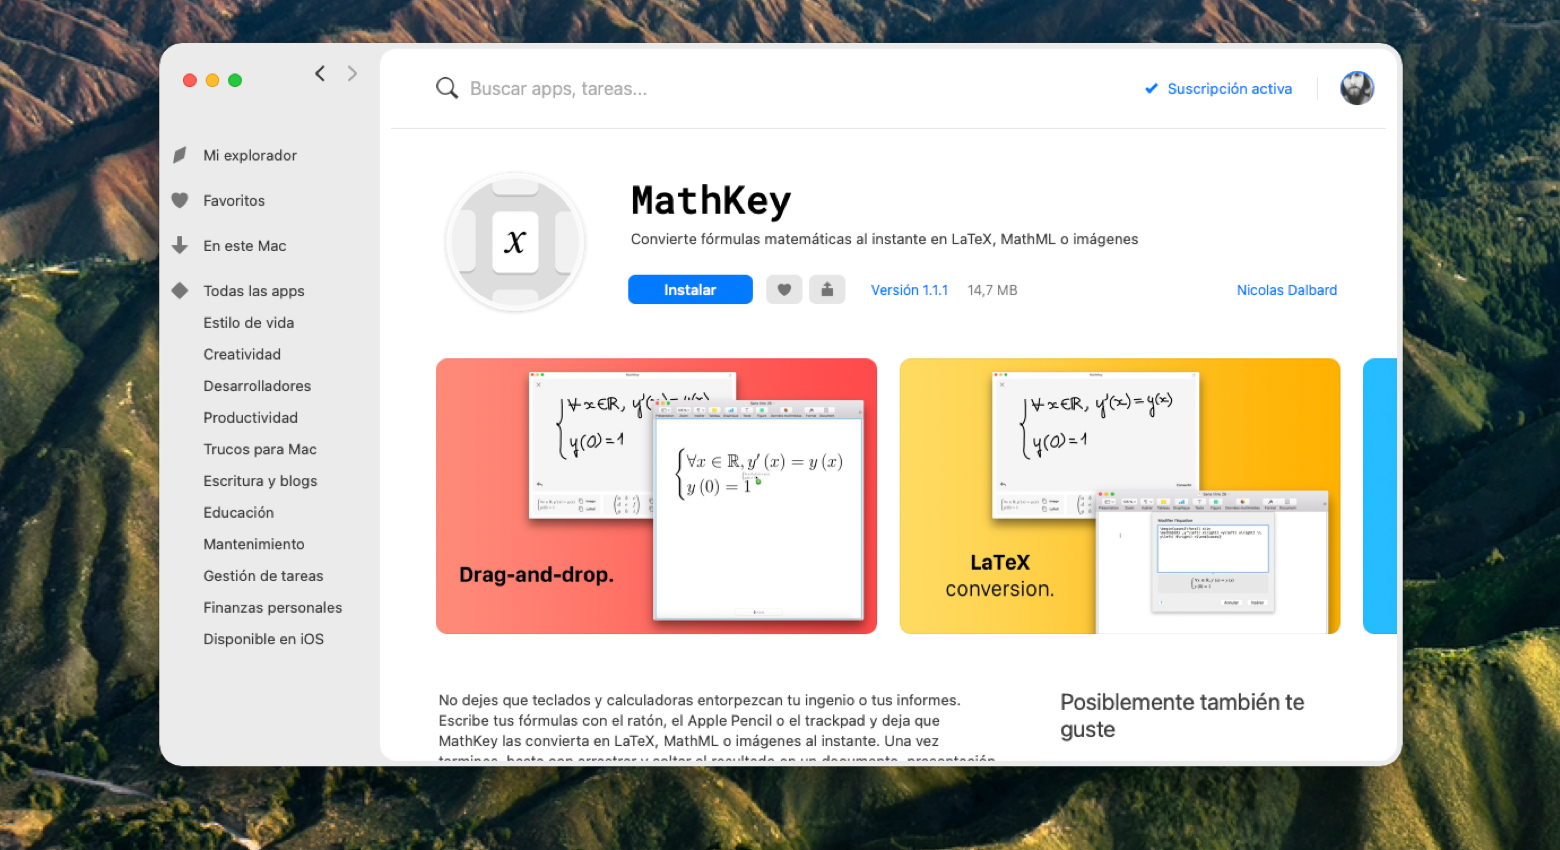 MathKey handwriting recognizer